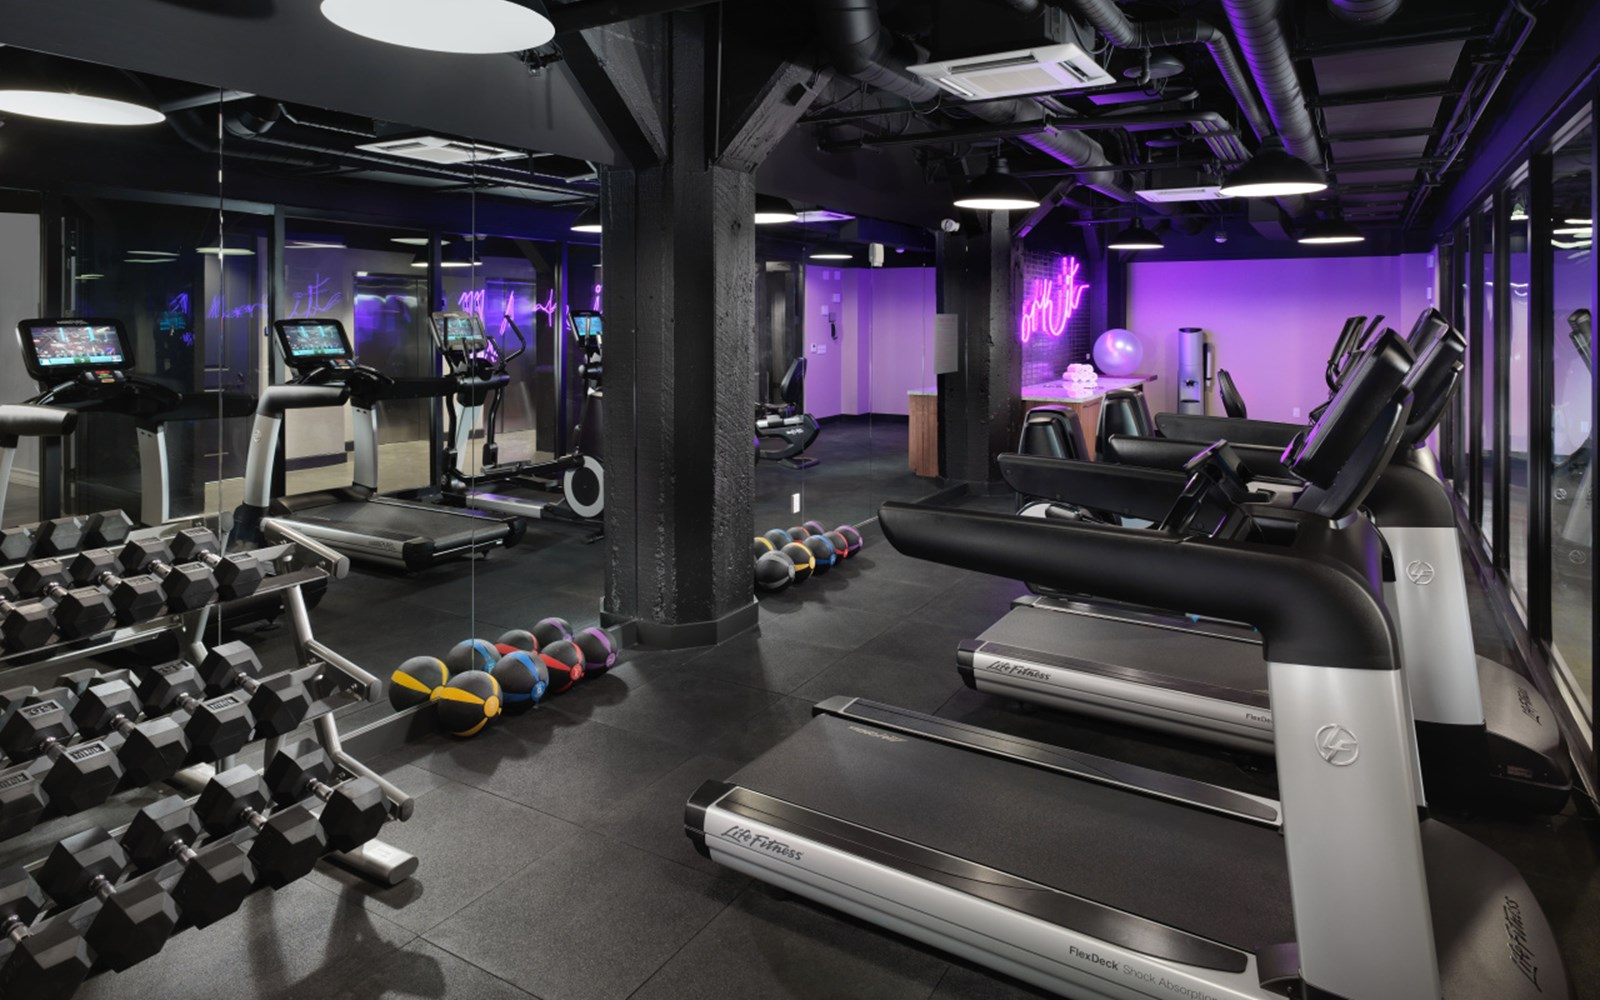 Fitness room with machines and weights